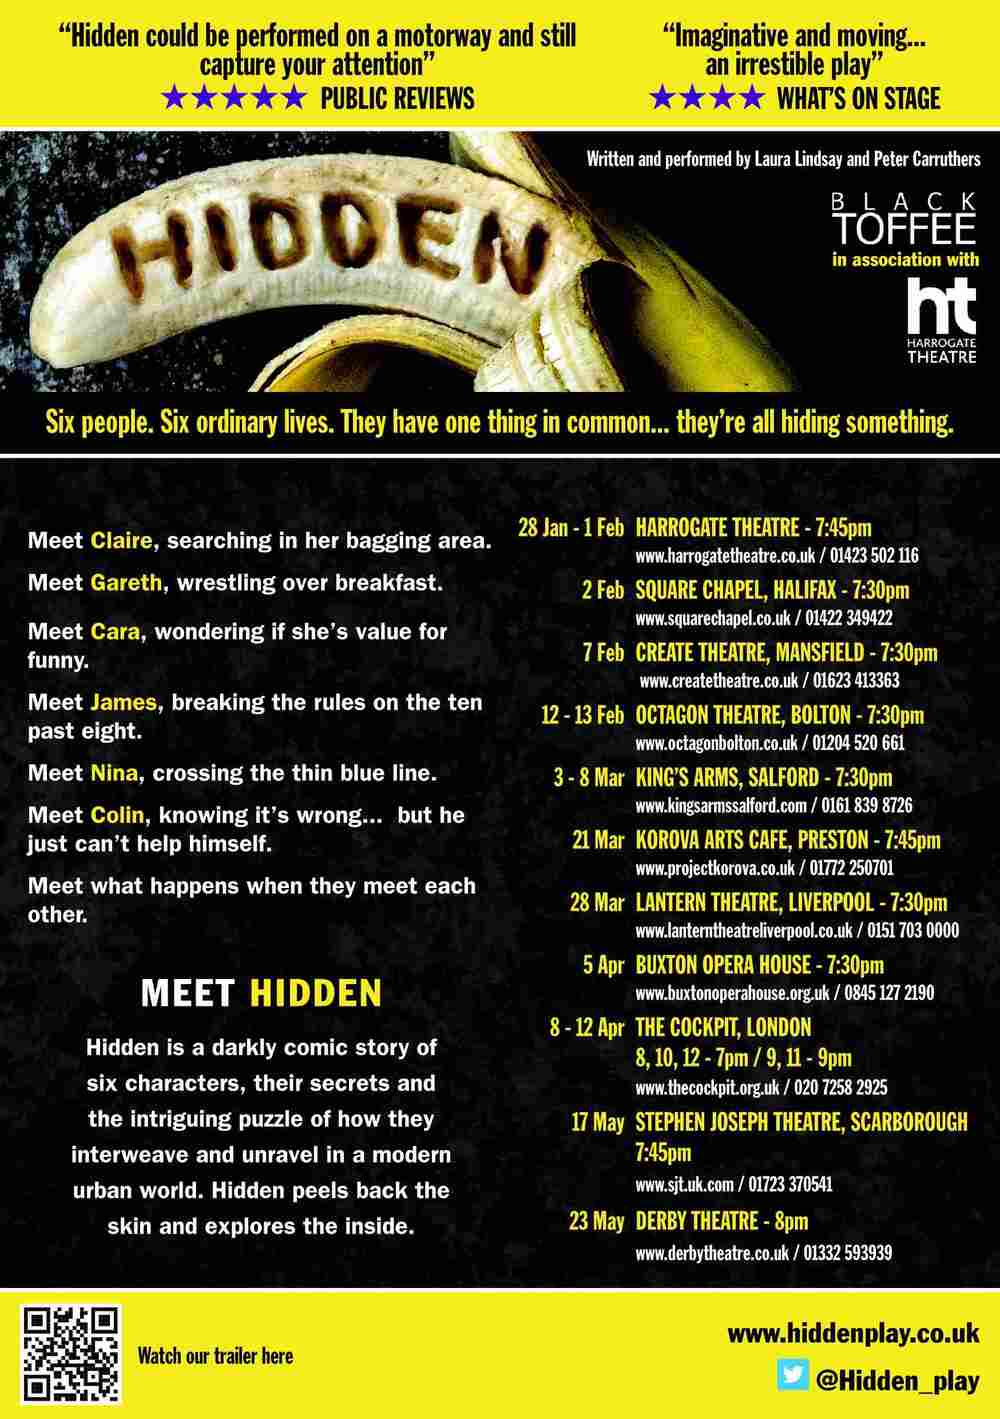 Hidden tour flyer -back-1.jpg